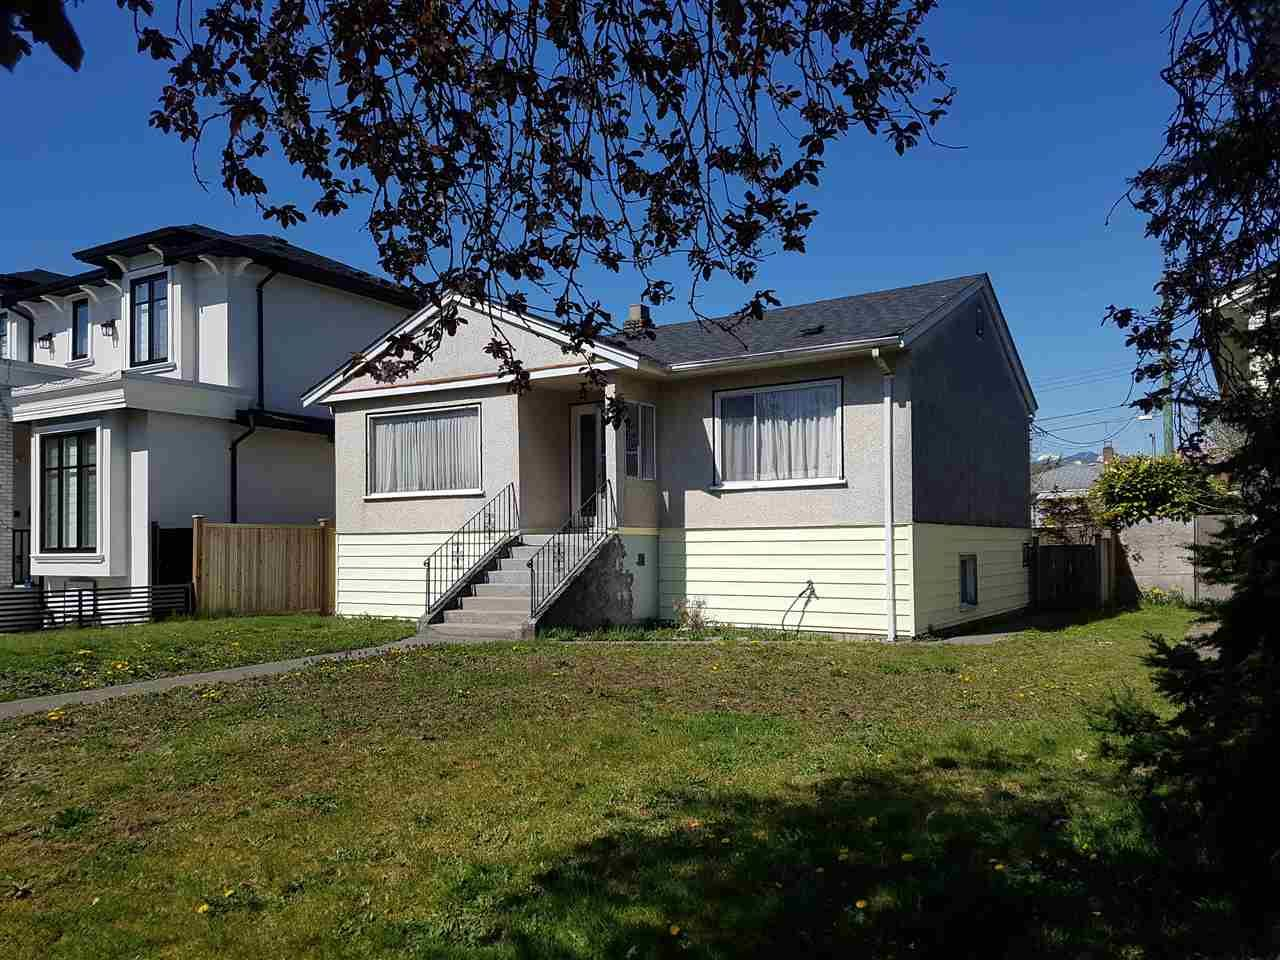 Main Photo: 2563 E 16TH Avenue in Vancouver: Renfrew Heights House for sale (Vancouver East)  : MLS®# R2568299